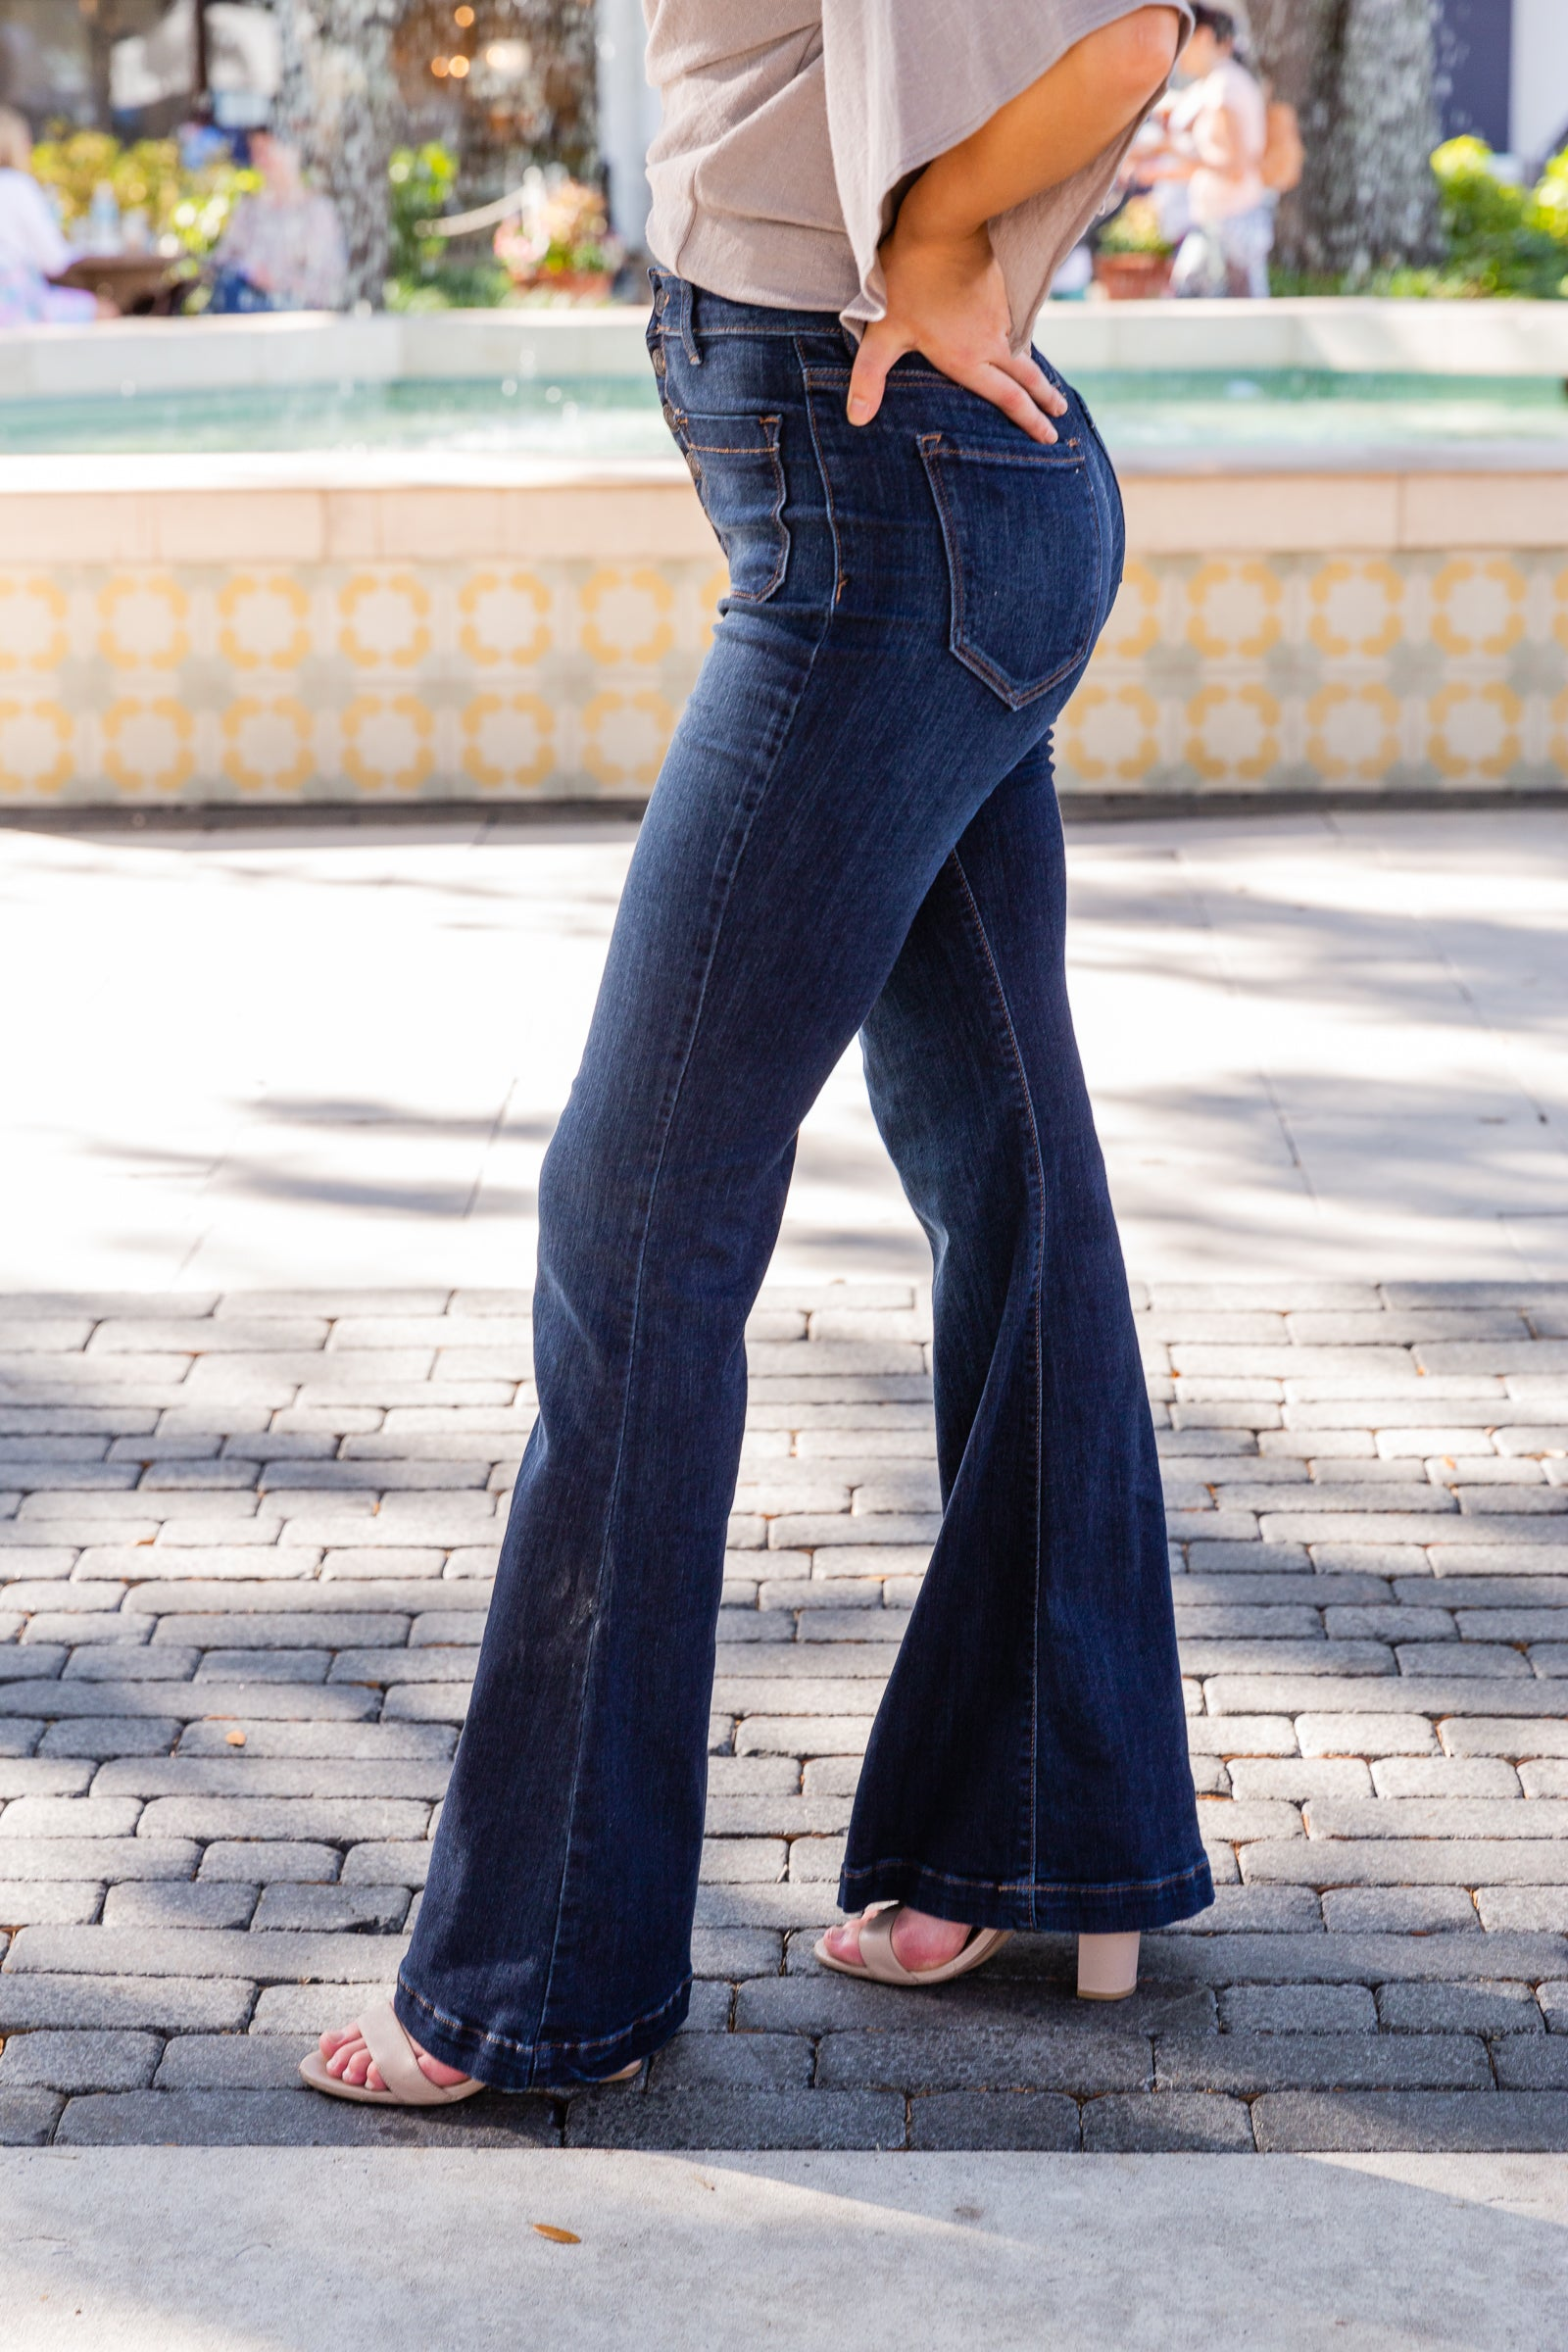 These denim pants have a fitted high-waisted waistband with a metal button-down fly that hugs your waist as they lead down to two front-facing pockets and bell-bottom and flared leg.